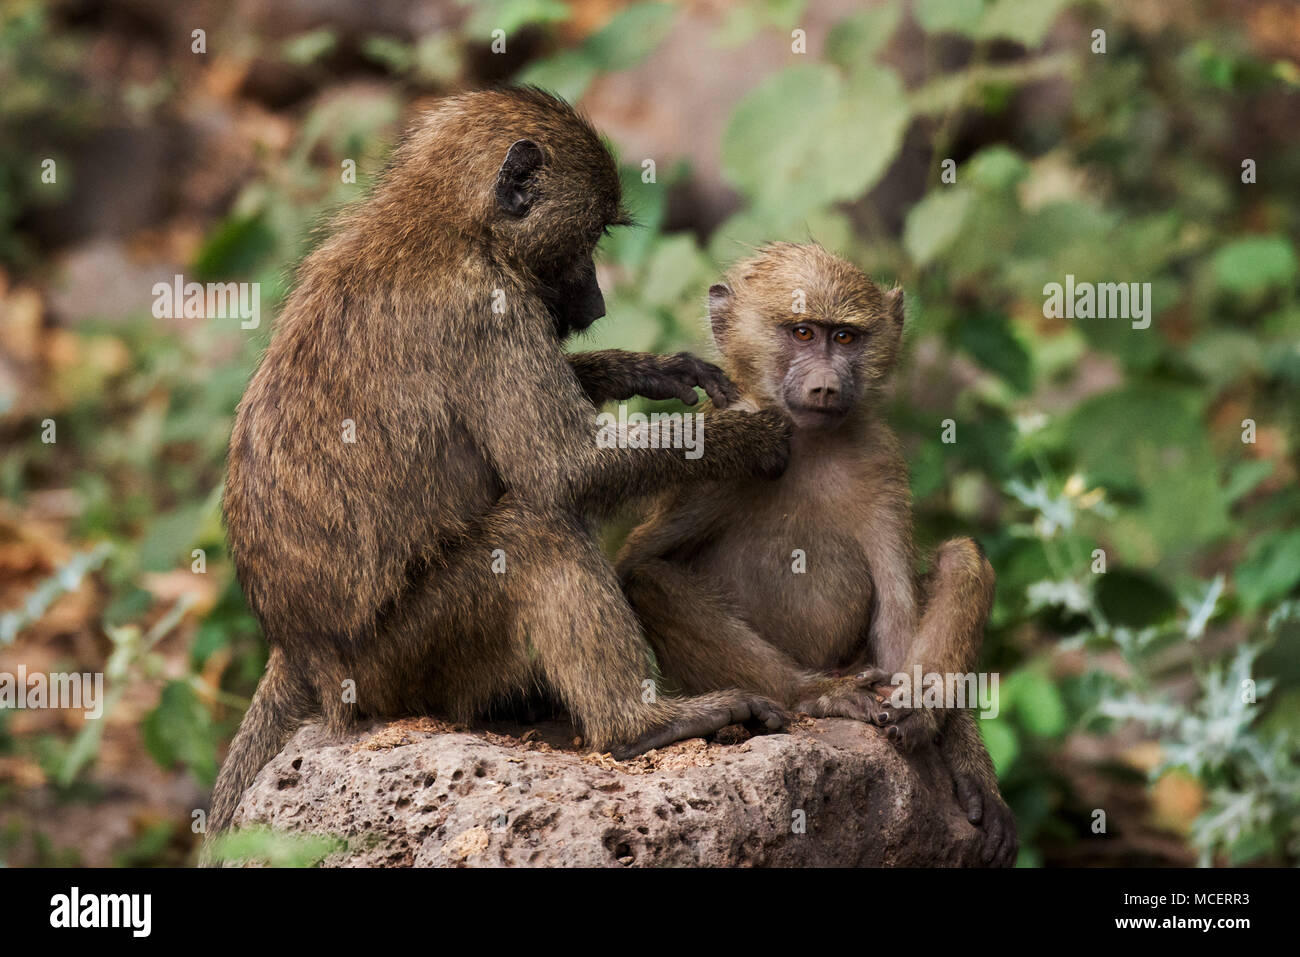 YELLOW BABOON (PAPIO CYNOCEPHALUS) MOTHER PREENING YOUNG BABOON, LAKE MANYARA NATIONAL PARK, TANZANIA - Stock Image